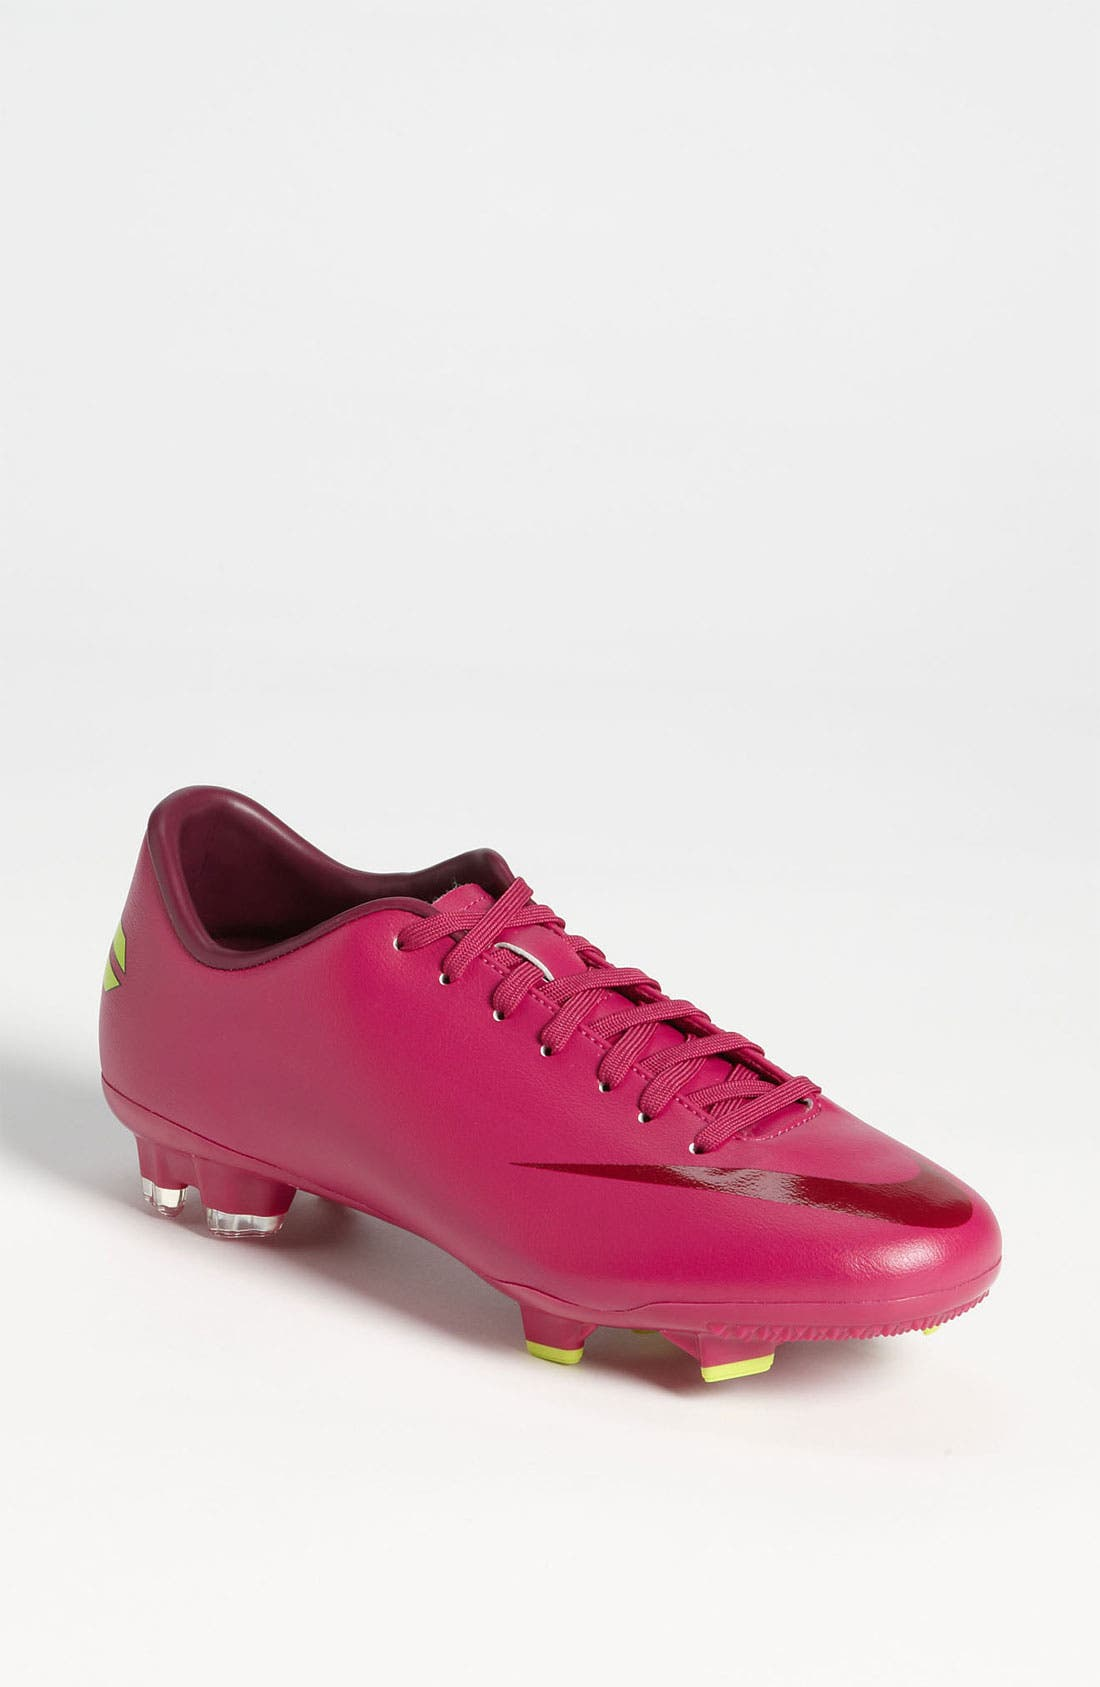 Alternate Image 1 Selected - Nike 'Mercurial Victory III' Soccer Cleat (Women)